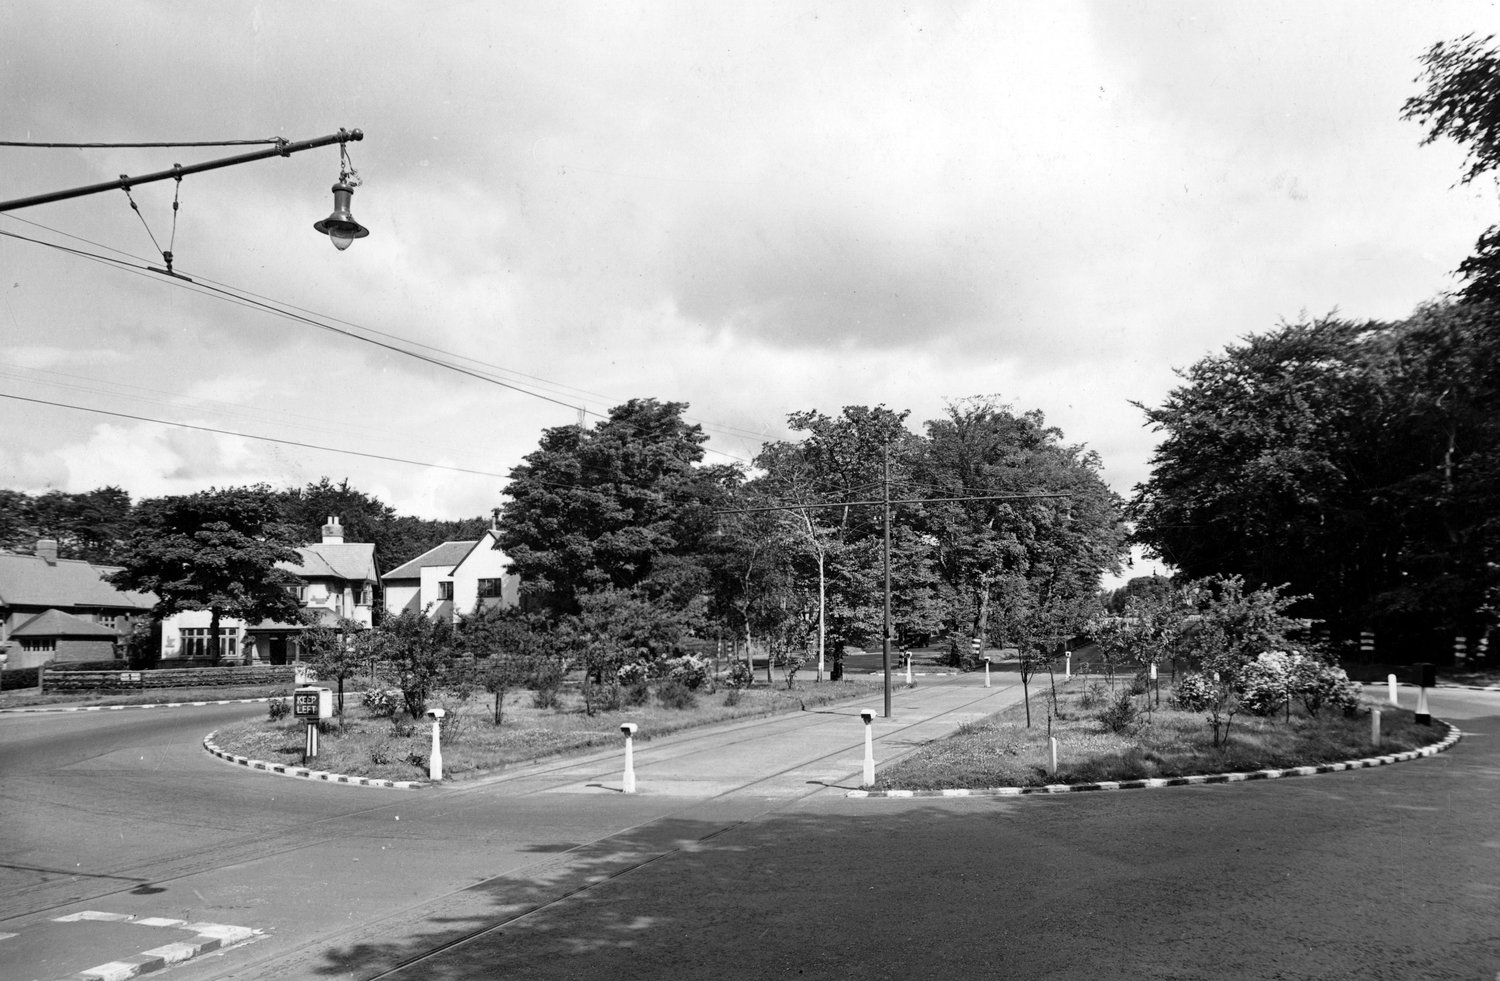 Lawnswood Roundabout, Otley Road, 1945